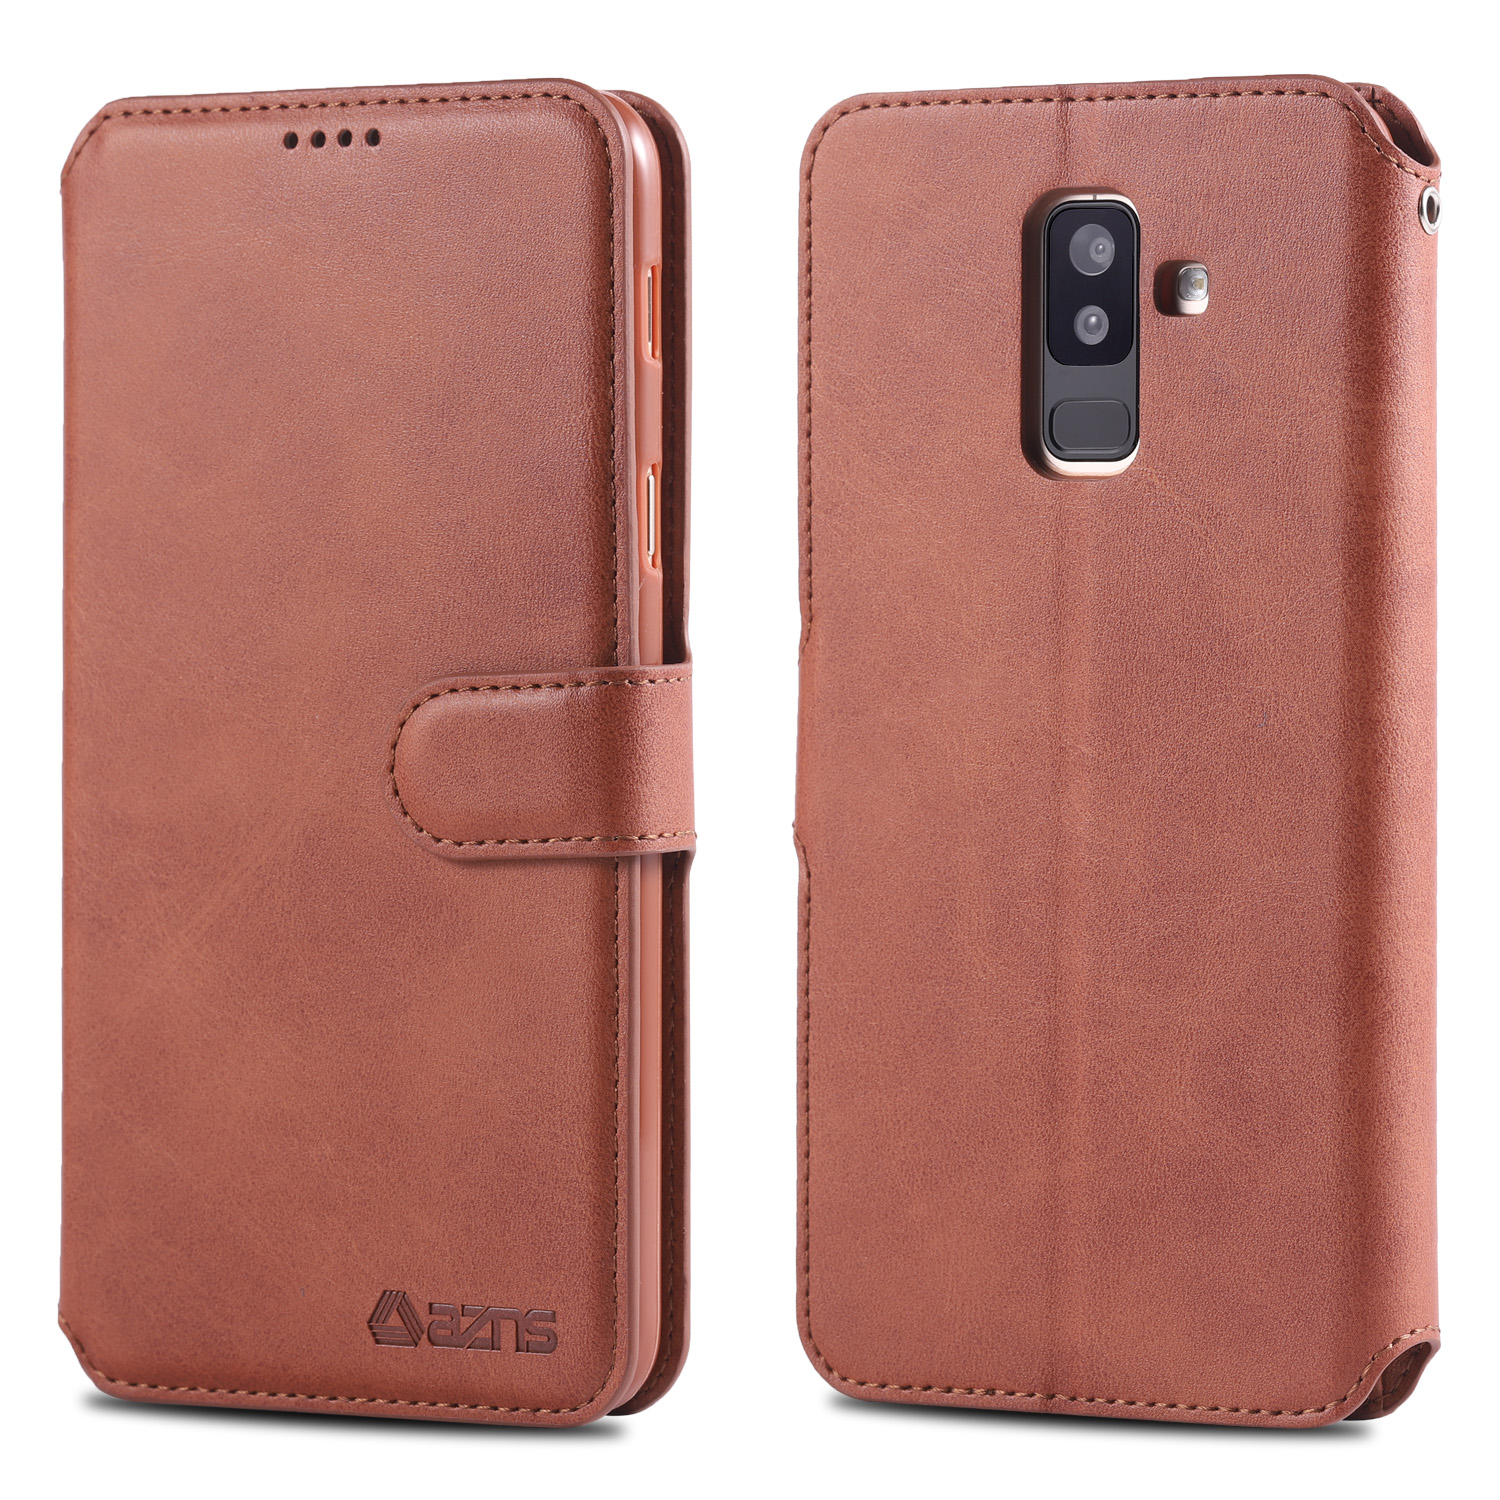 Luxury Leather Wallet Case For Samsung Galaxy A6 2018 a6 plus With Card Holder Flip Case For Samsung A6 Plus Cover Silicone in Wallet Cases from Cellphones Telecommunications